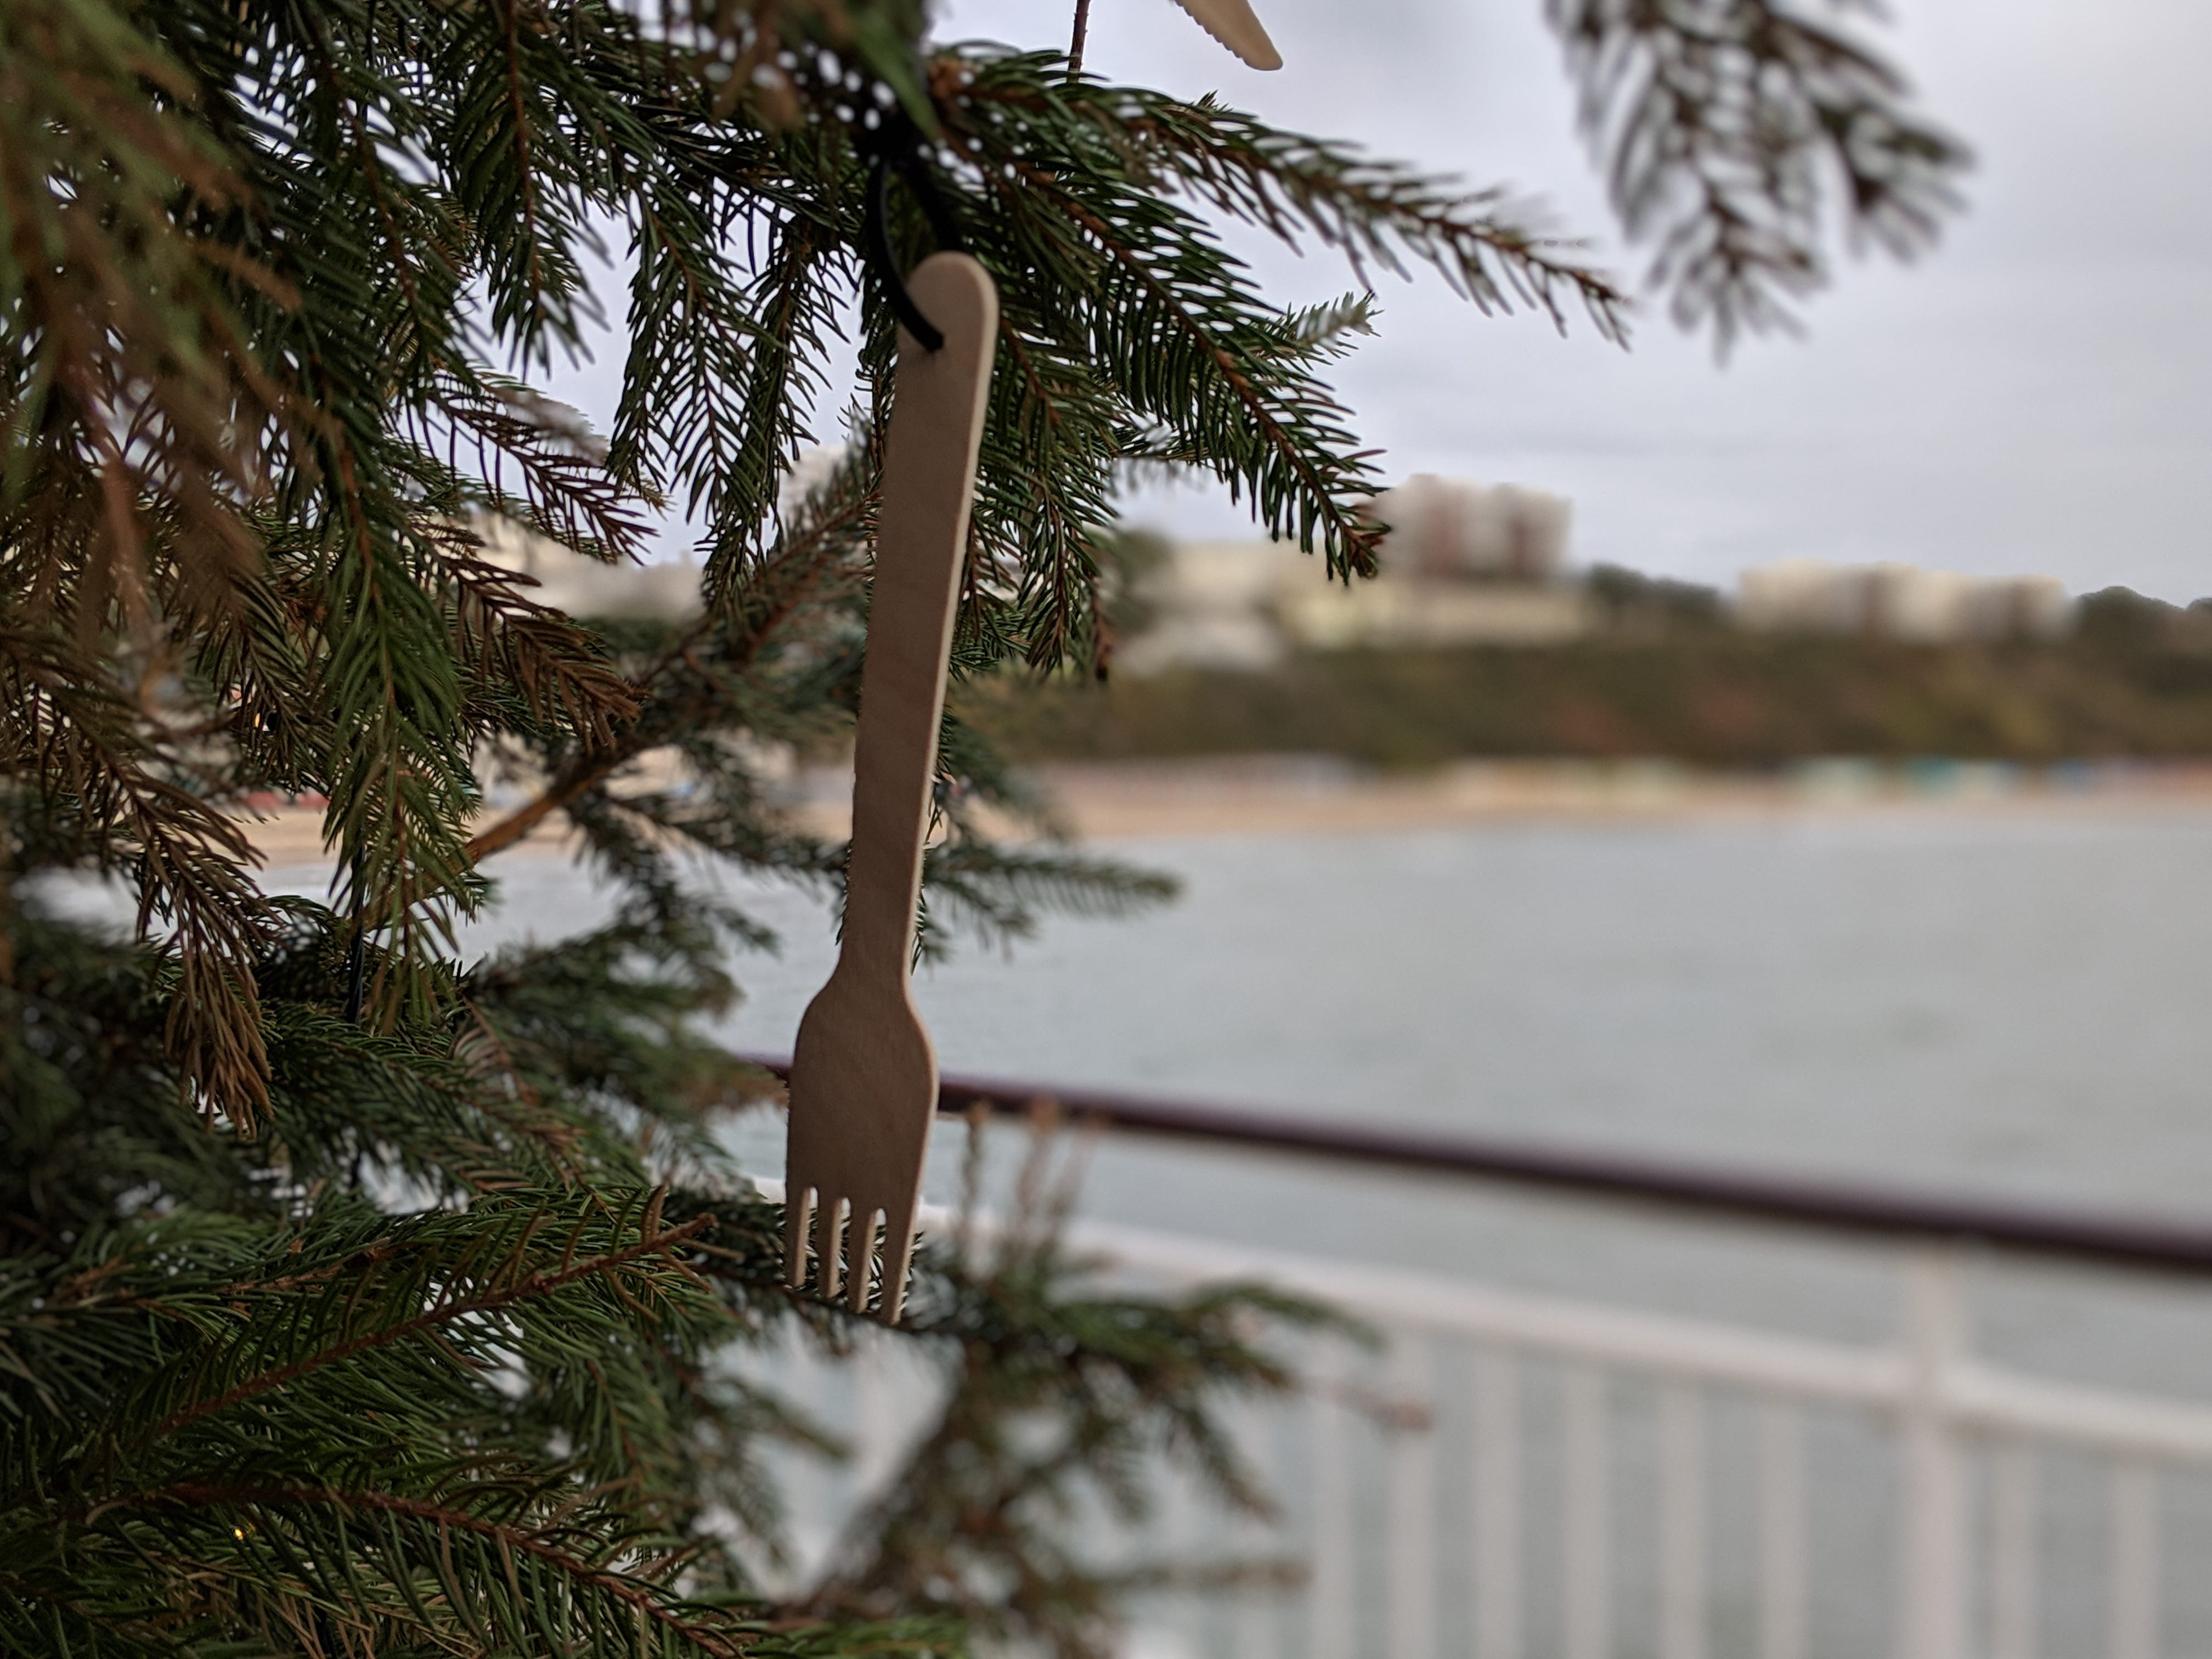 Key Wests Christmas Tree Close up of Cutlery